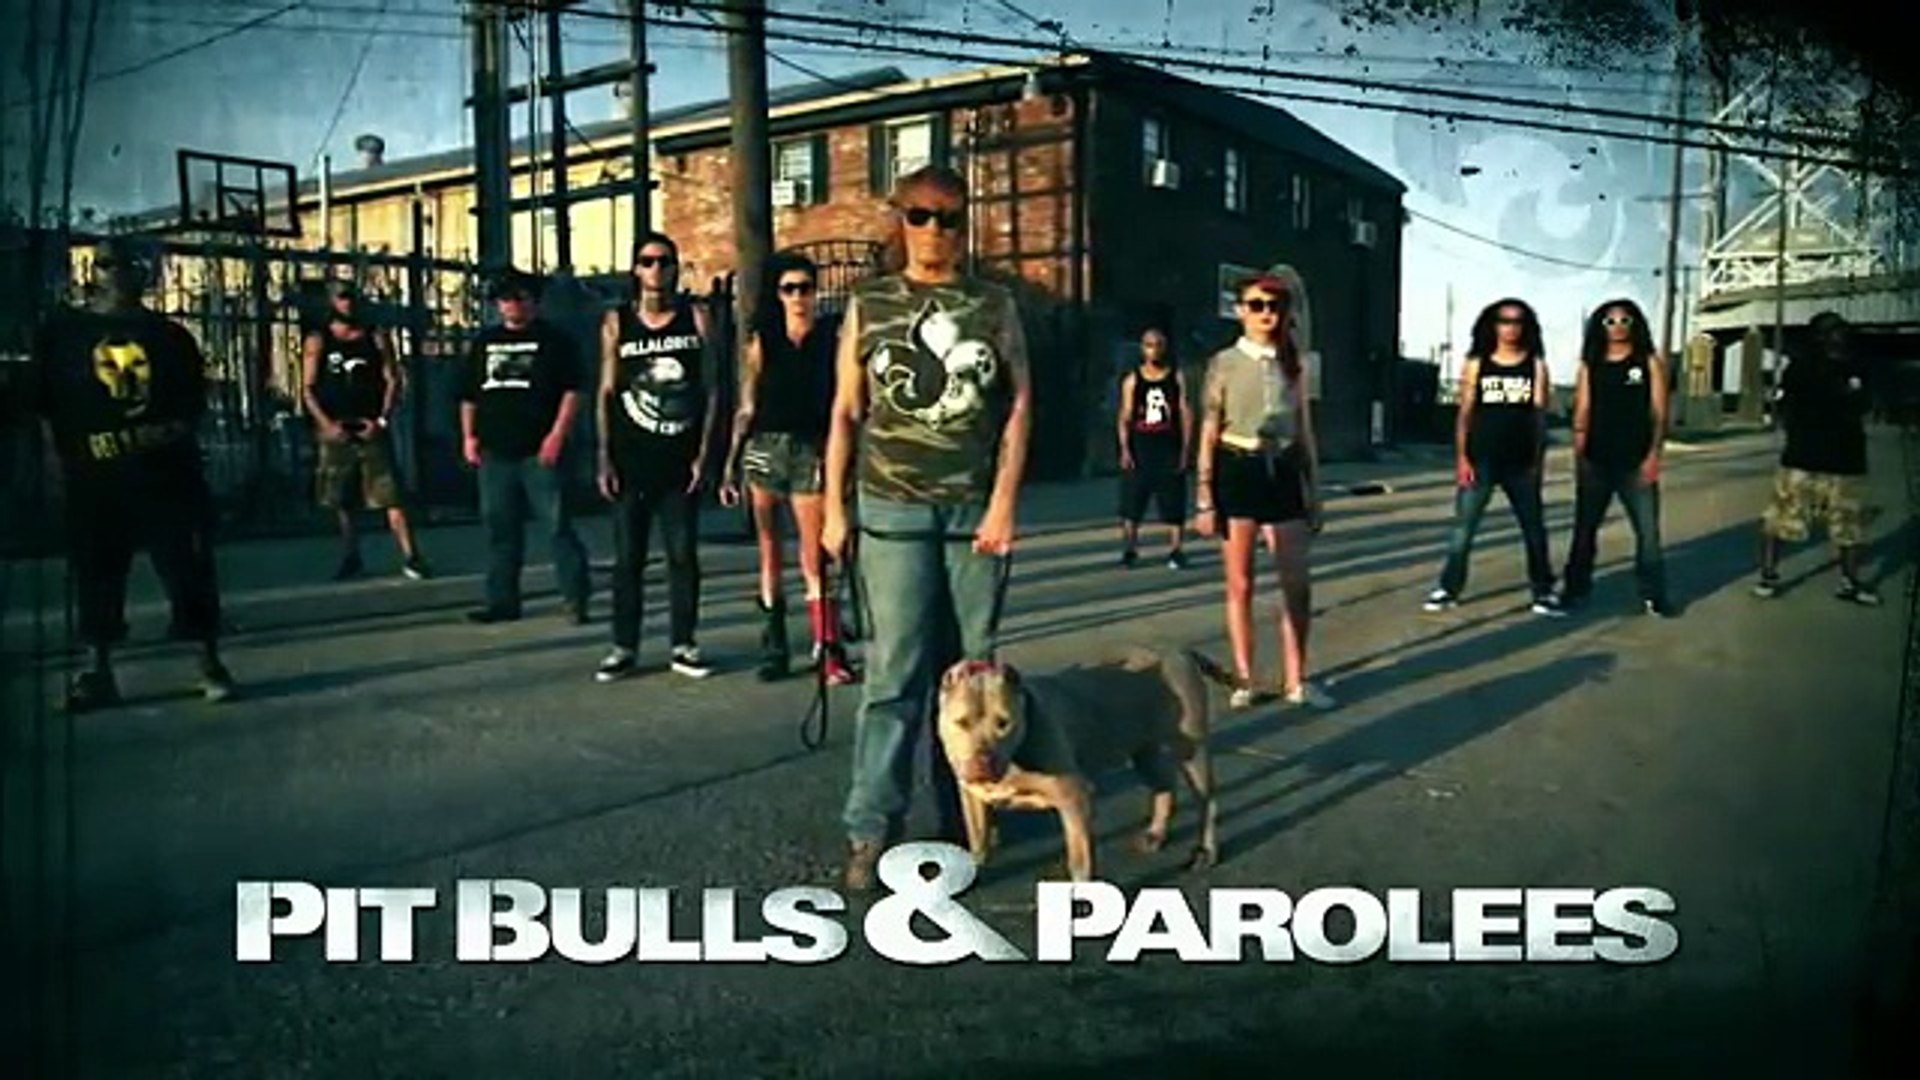 One Last Road Trip for Bluey   Pit Bulls and Parolees